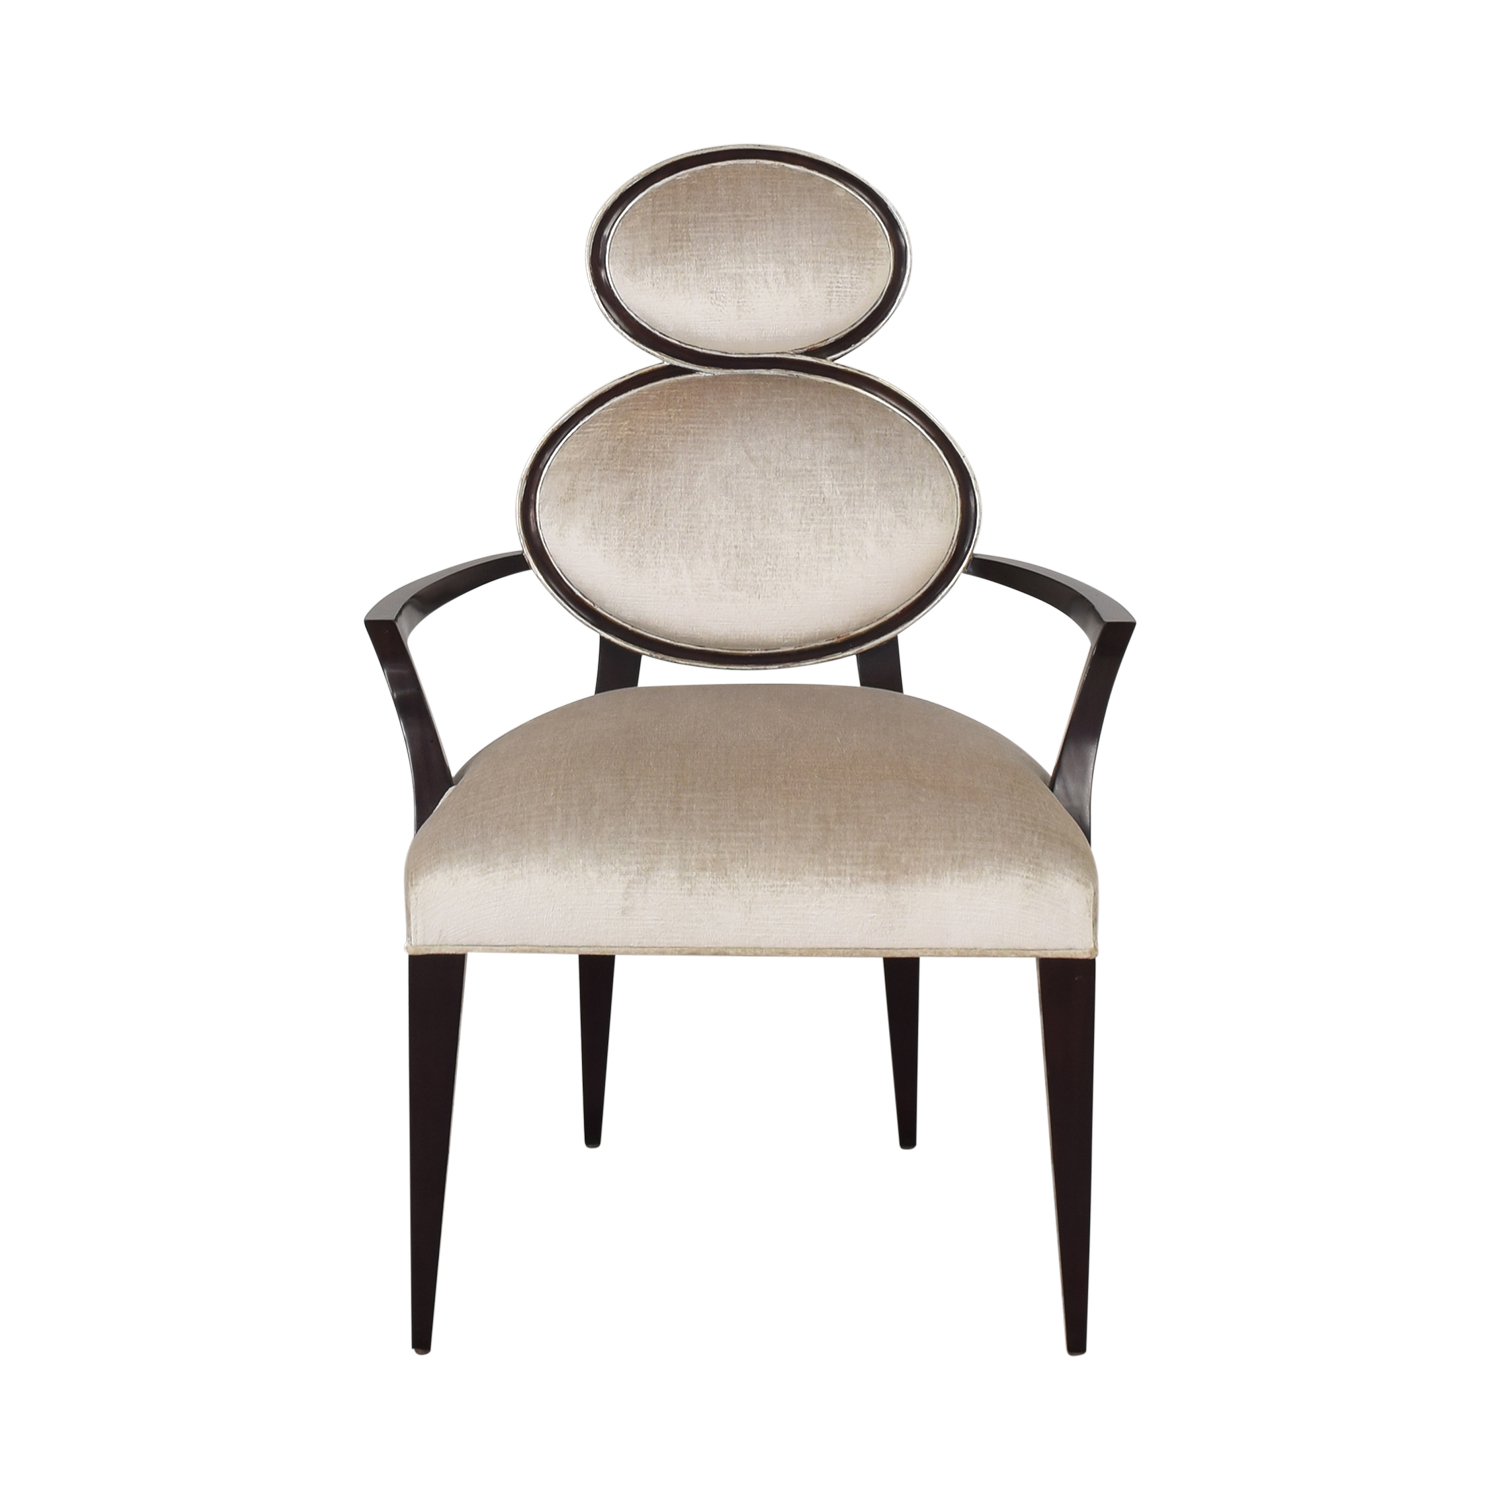 buy Christopher Guy Christopher Guy Eight Chair online